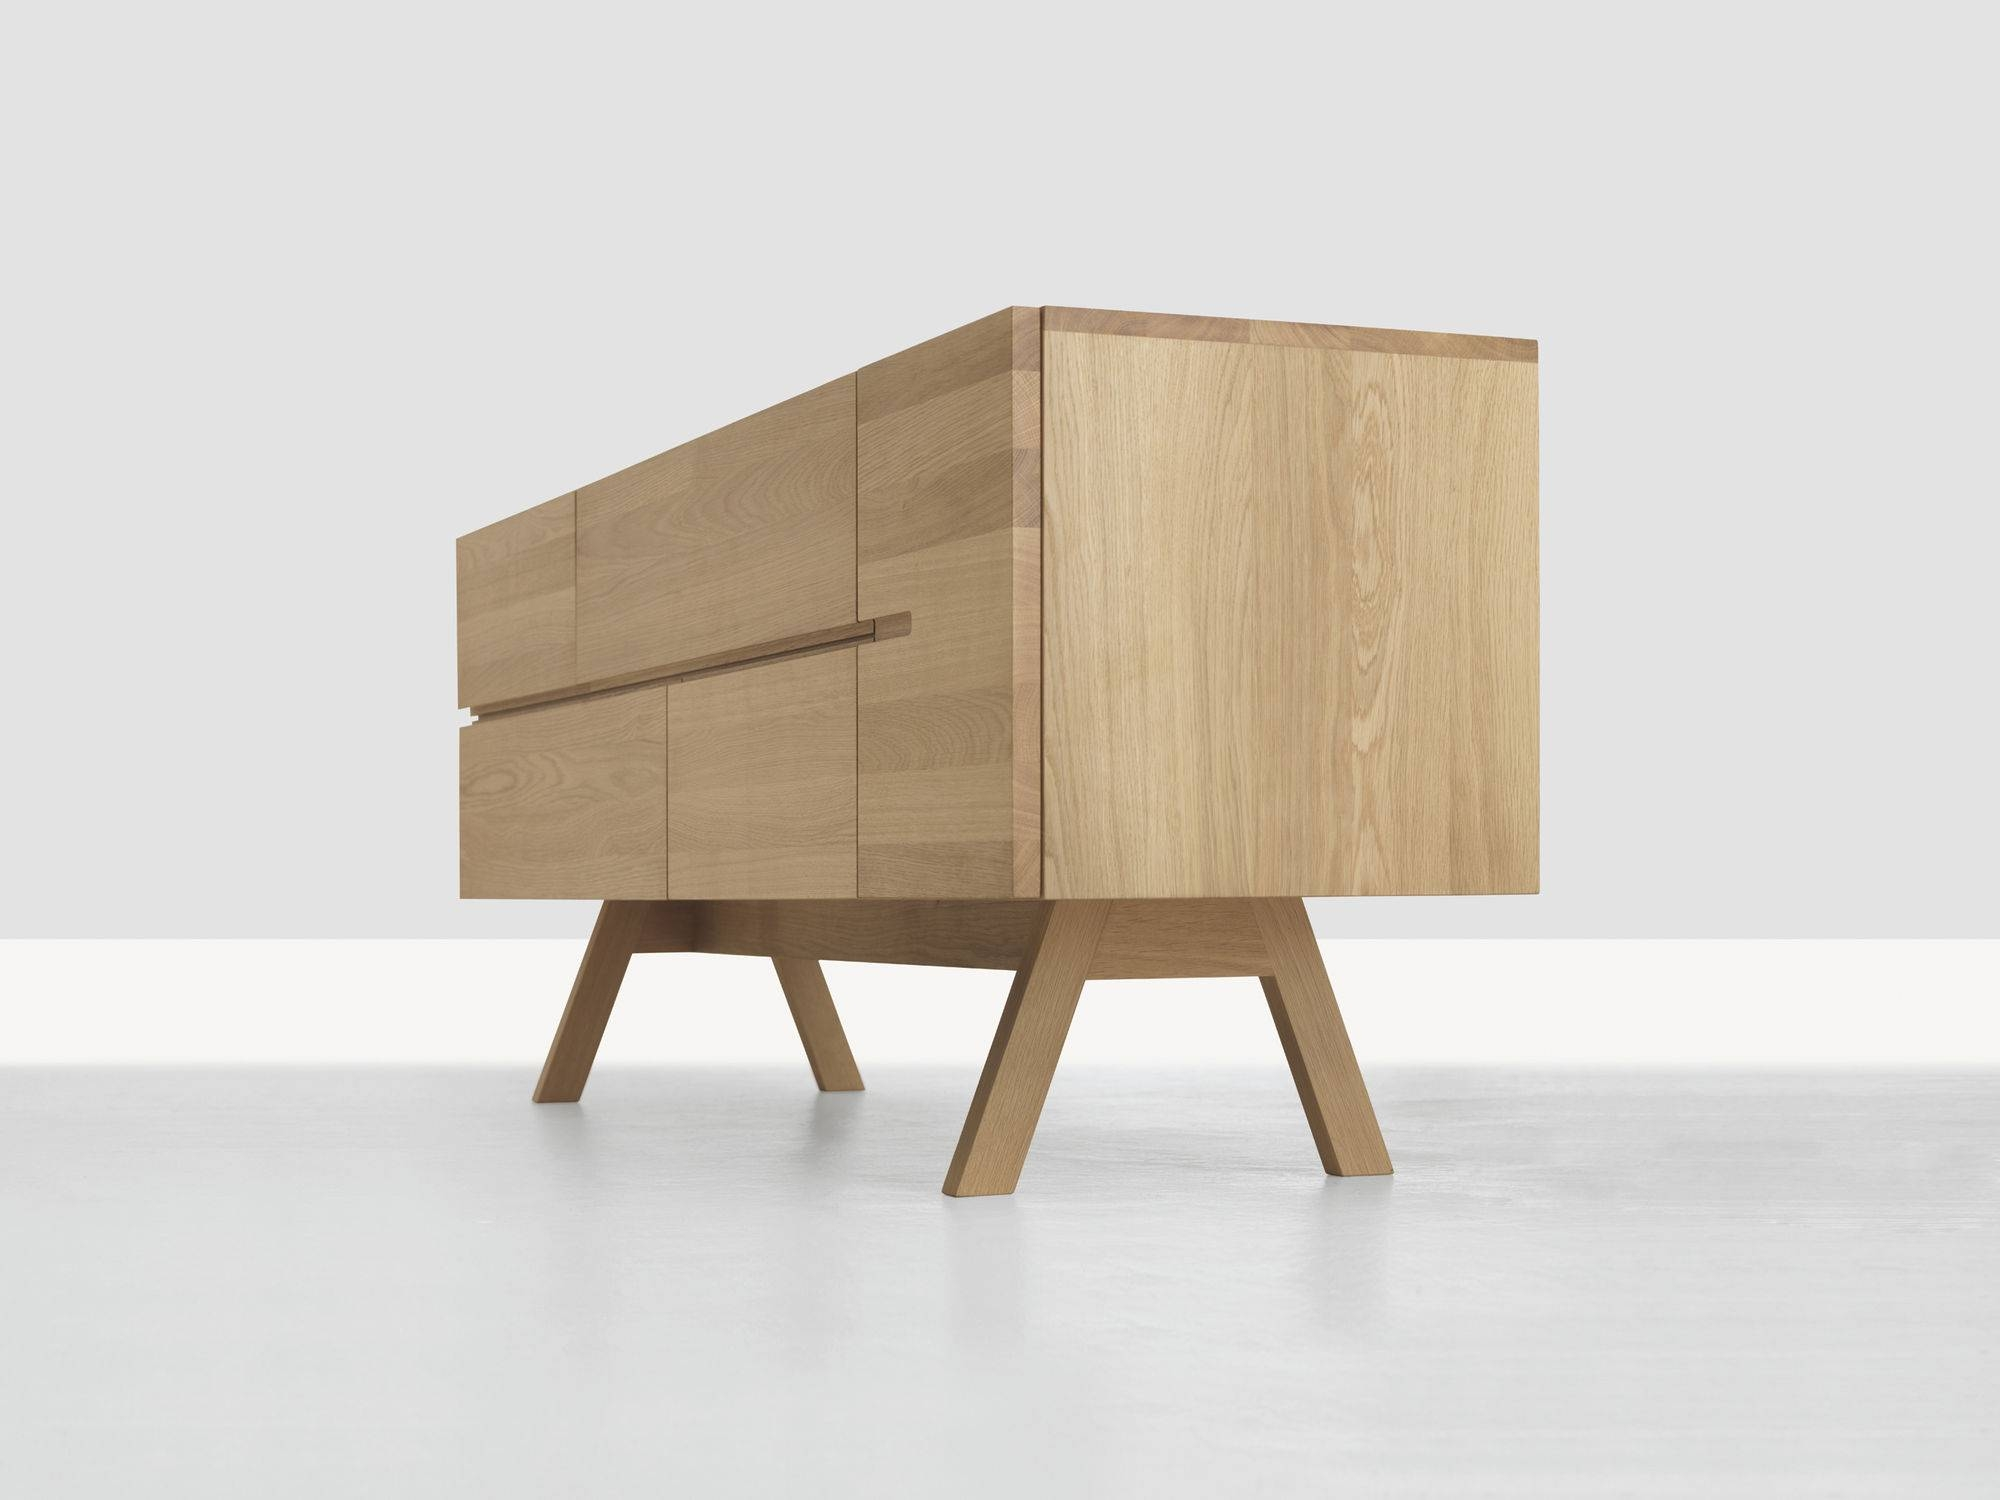 Contemporary Sideboard / Solid Wood - Low Atelierformstelle pertaining to Contemporary Wood Sideboards (Image 9 of 30)